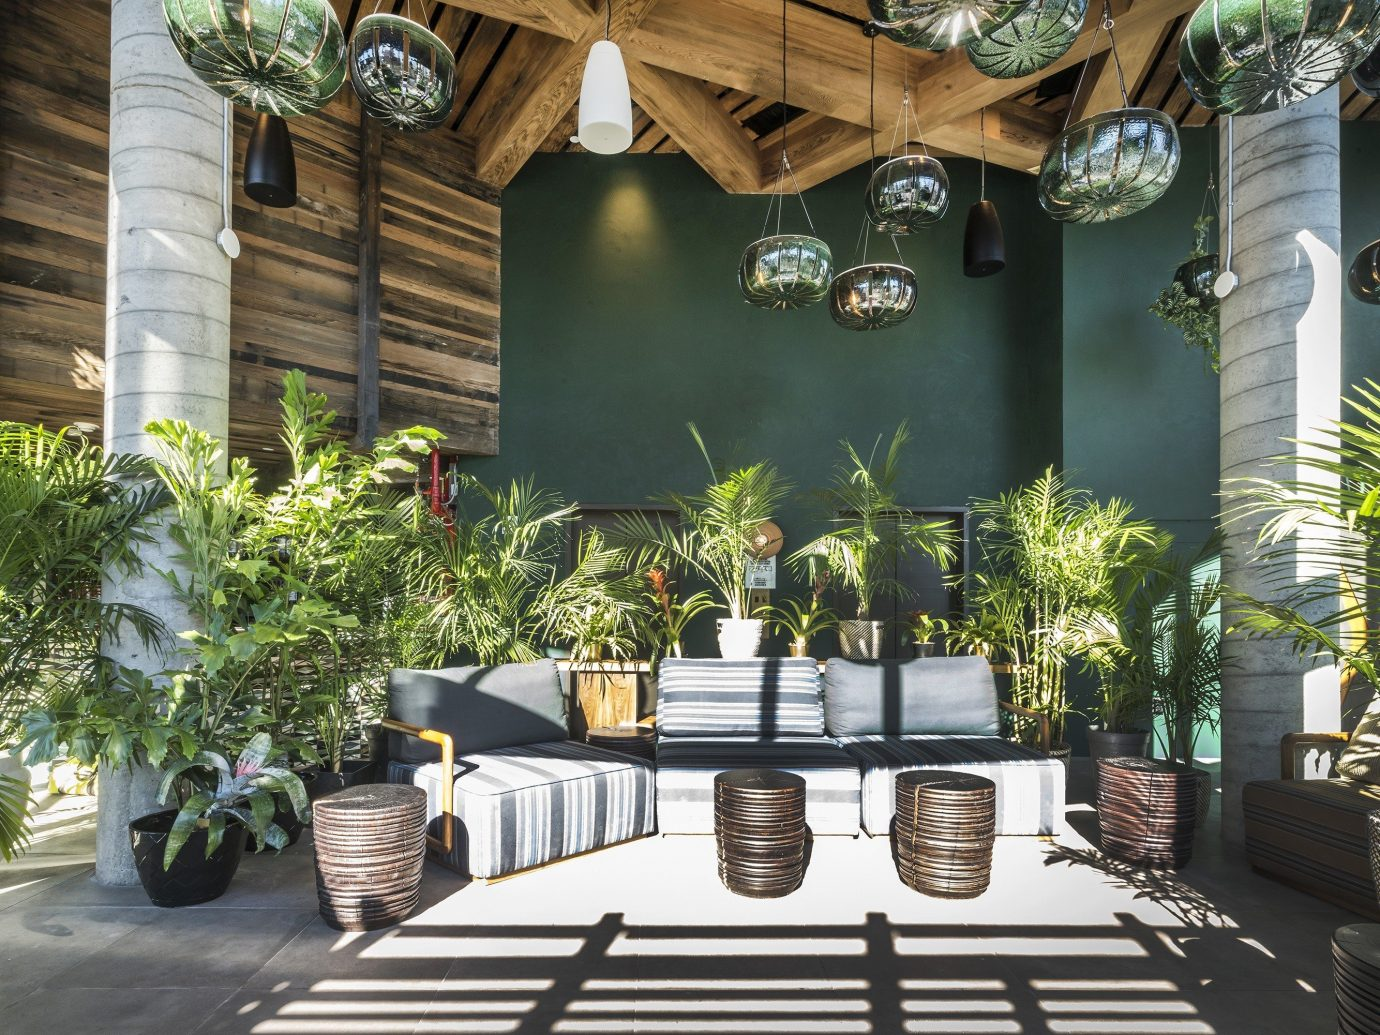 Boutique Hotels Food + Drink Hotels tree plant Courtyard home outdoor structure Patio interior design real estate arecales backyard house estate Garden landscaping palm tree decorated furniture